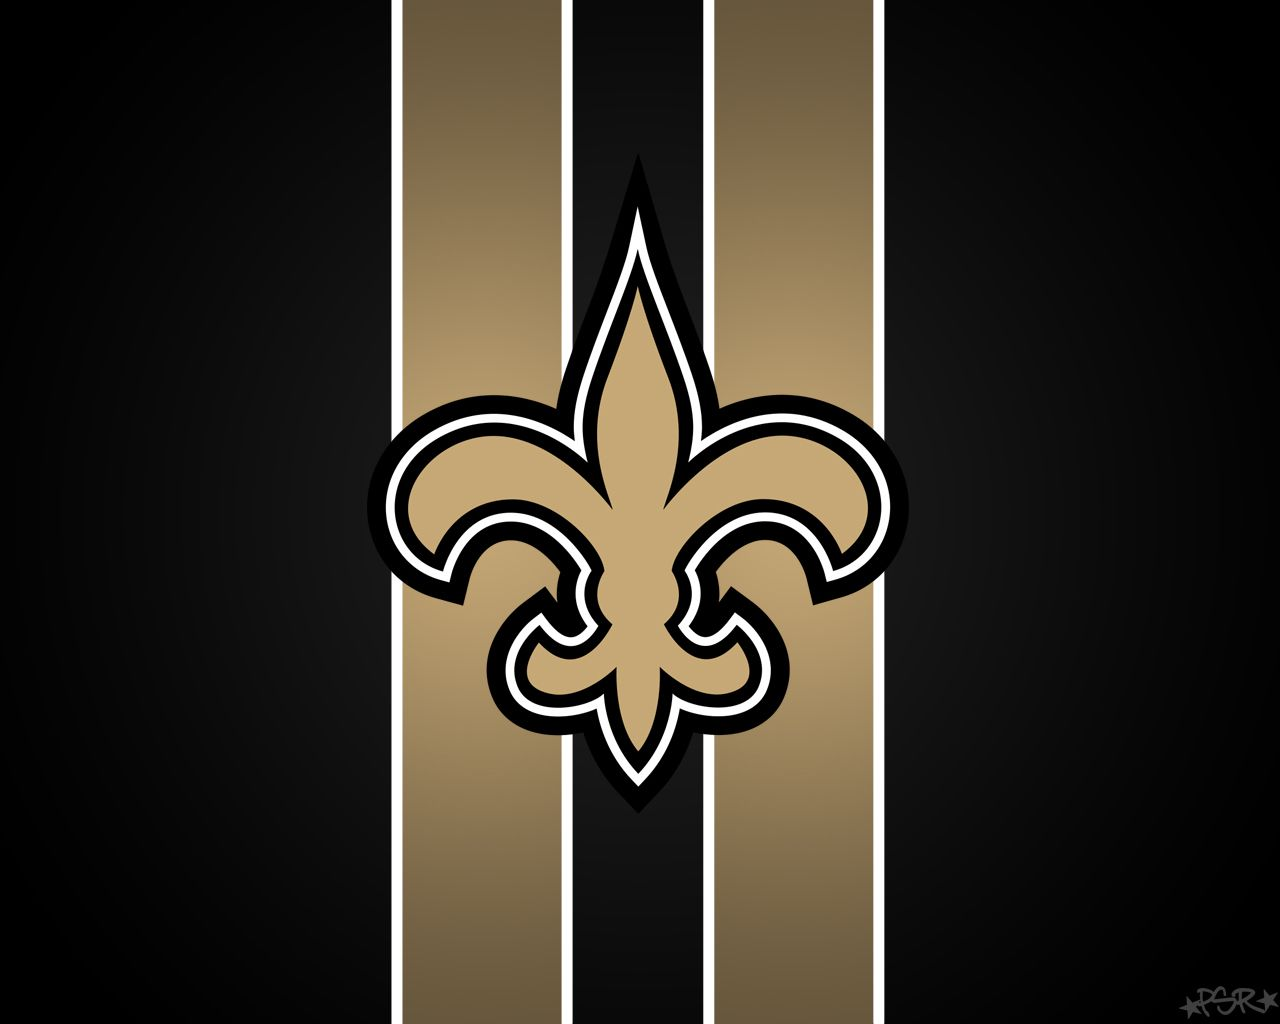 8 new orleans saints hd wallpapers backgrounds wallpaper abyss 8 new orleans saints hd wallpapers backgrounds wallpaper abyss biocorpaavc Gallery